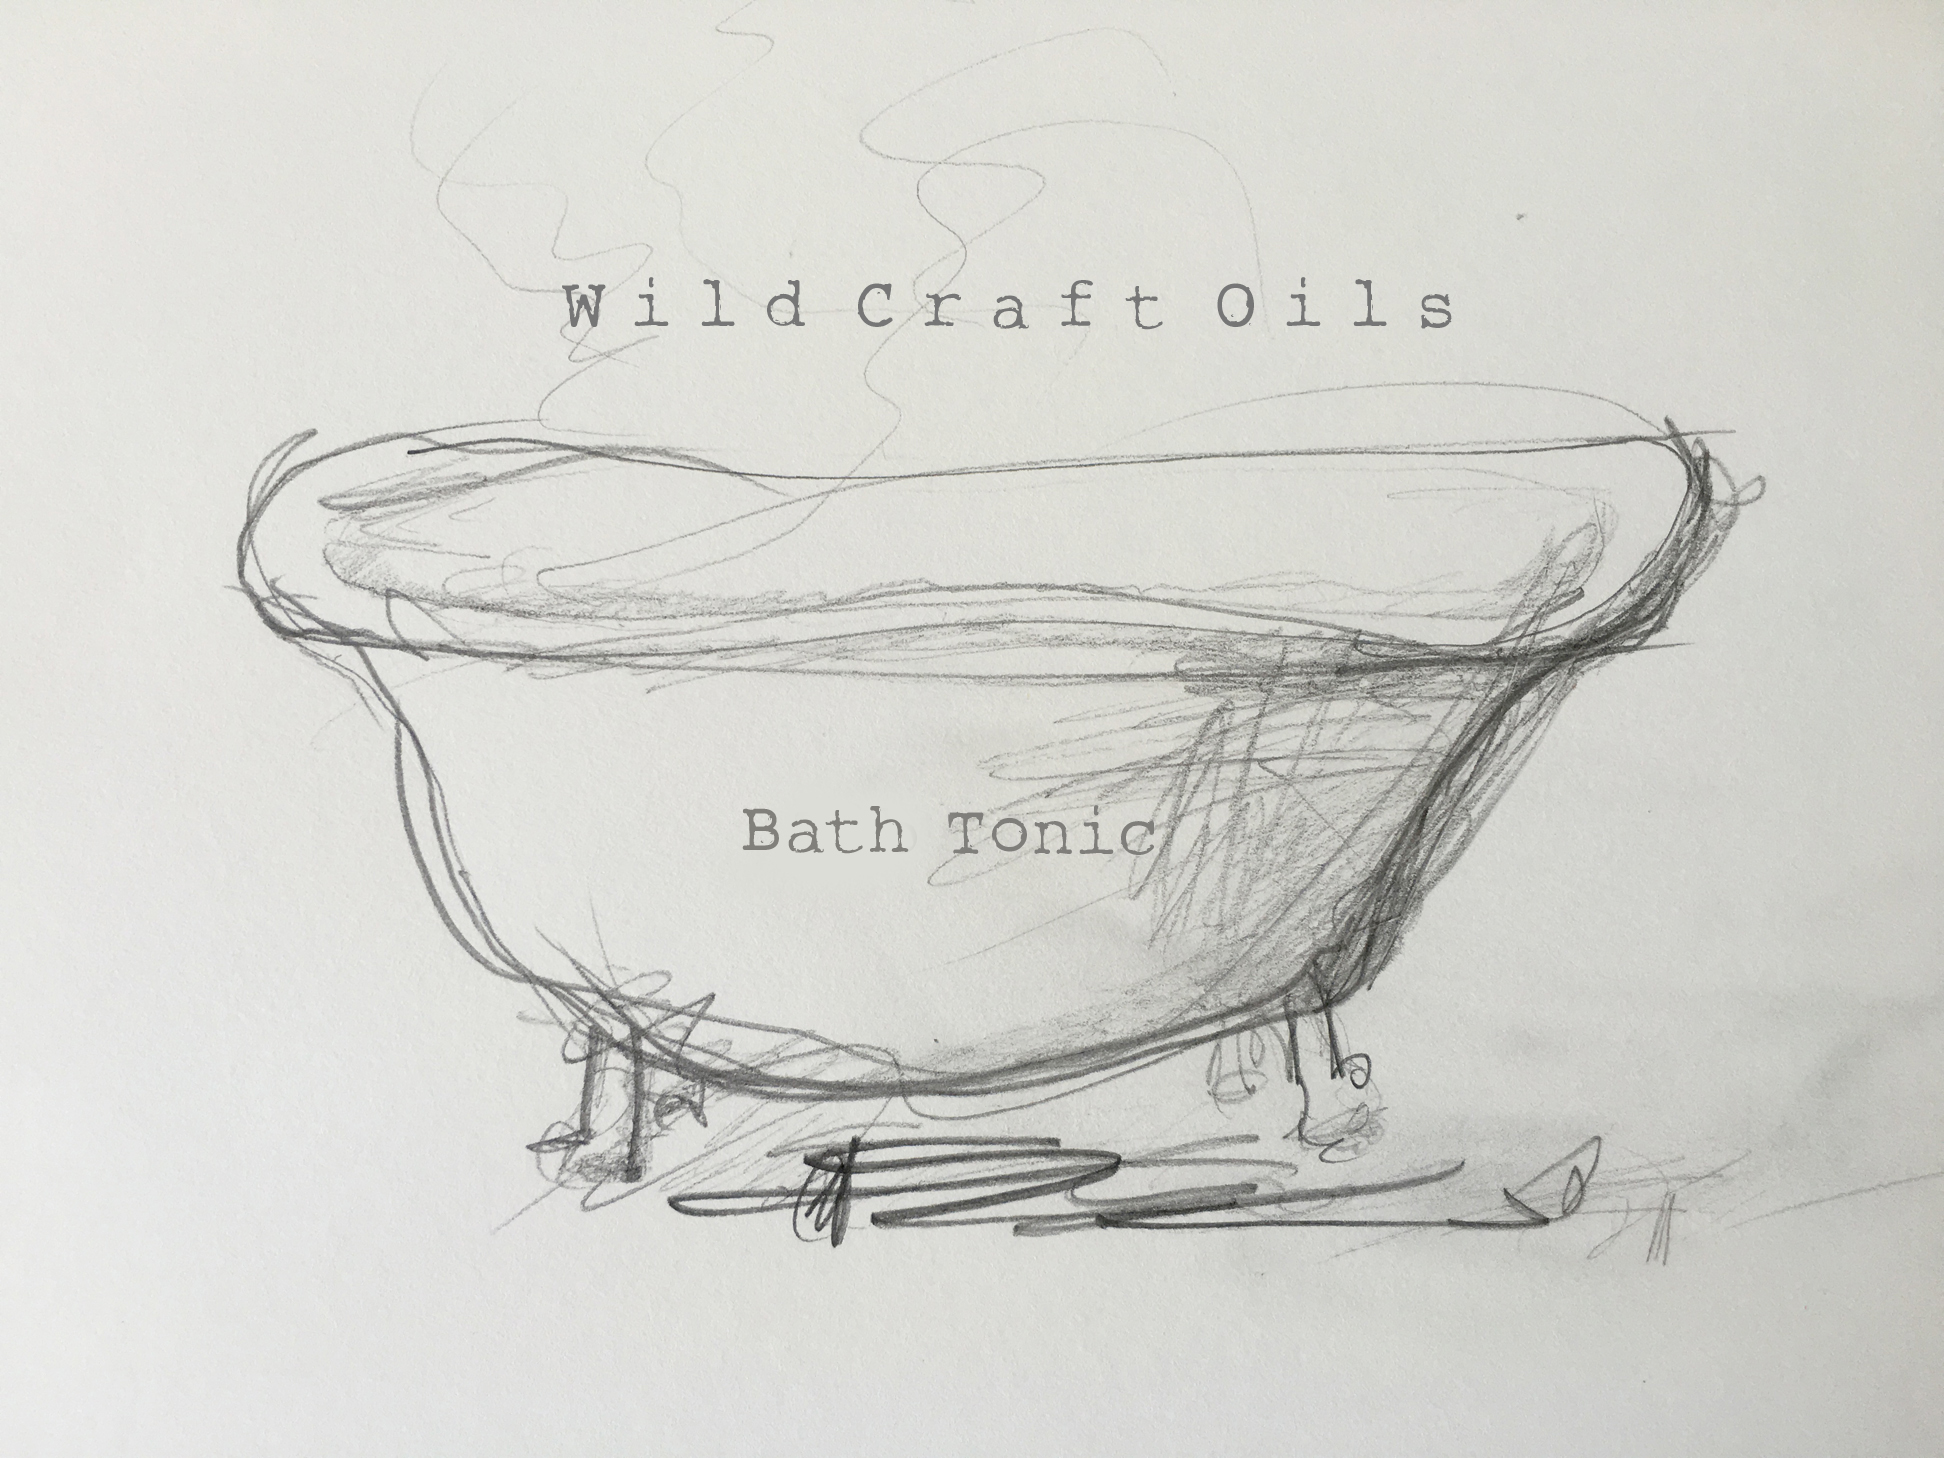 Wild Craft Oils | All Natural Hydrosol Tub Tonic | Encinitas, Ca.